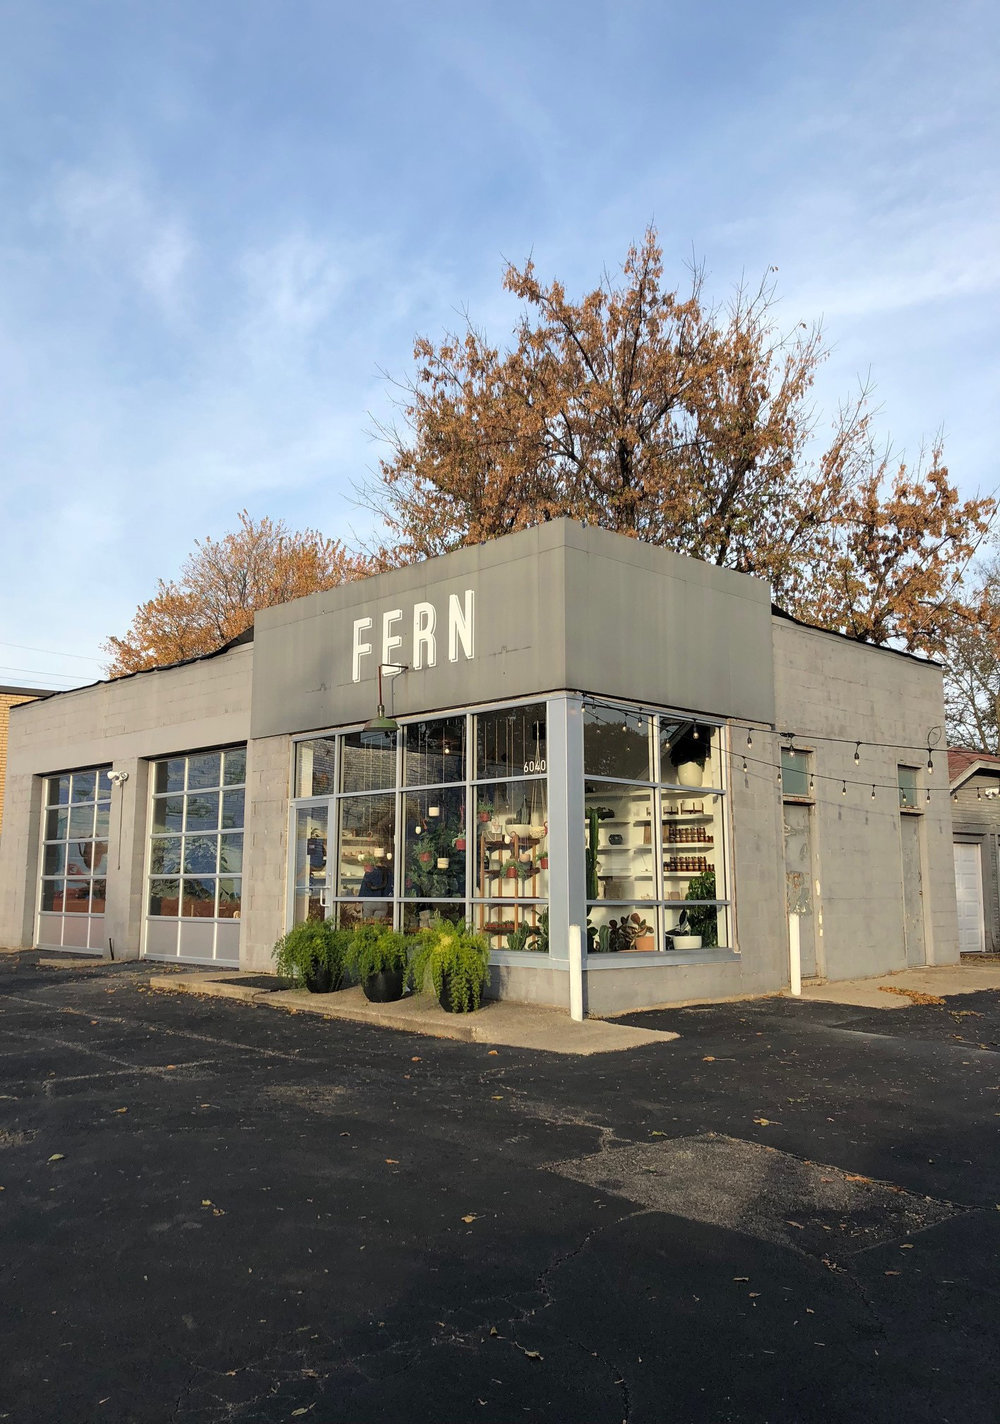 Fern Shop Cincinnati